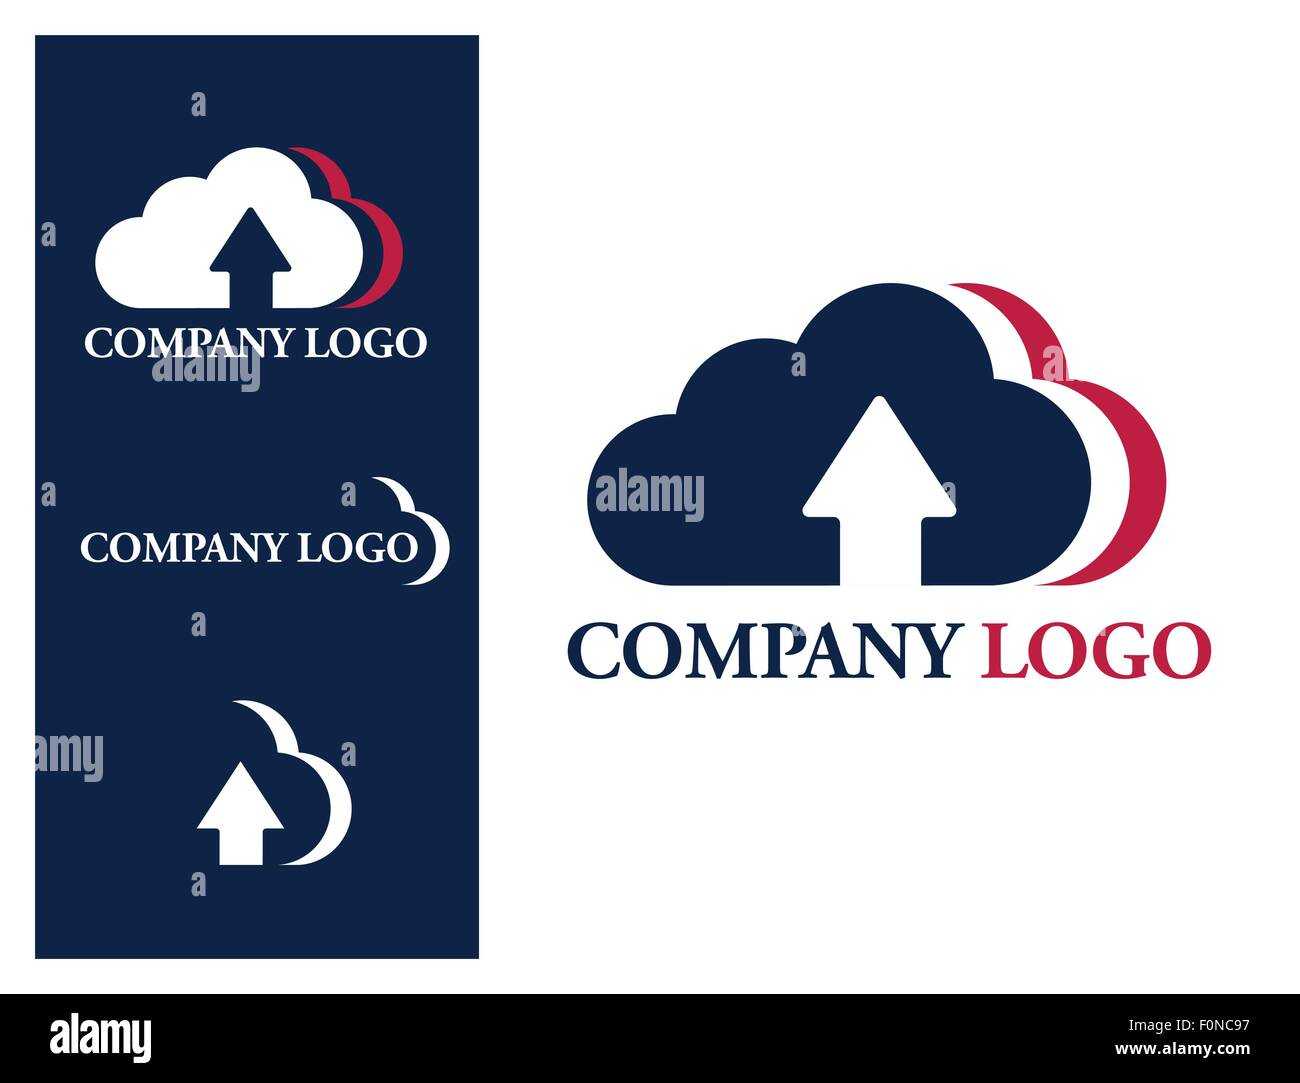 Logo design element. Cloud company logo. Three U.S. colored clouds with upload arrow sign. - Stock Vector